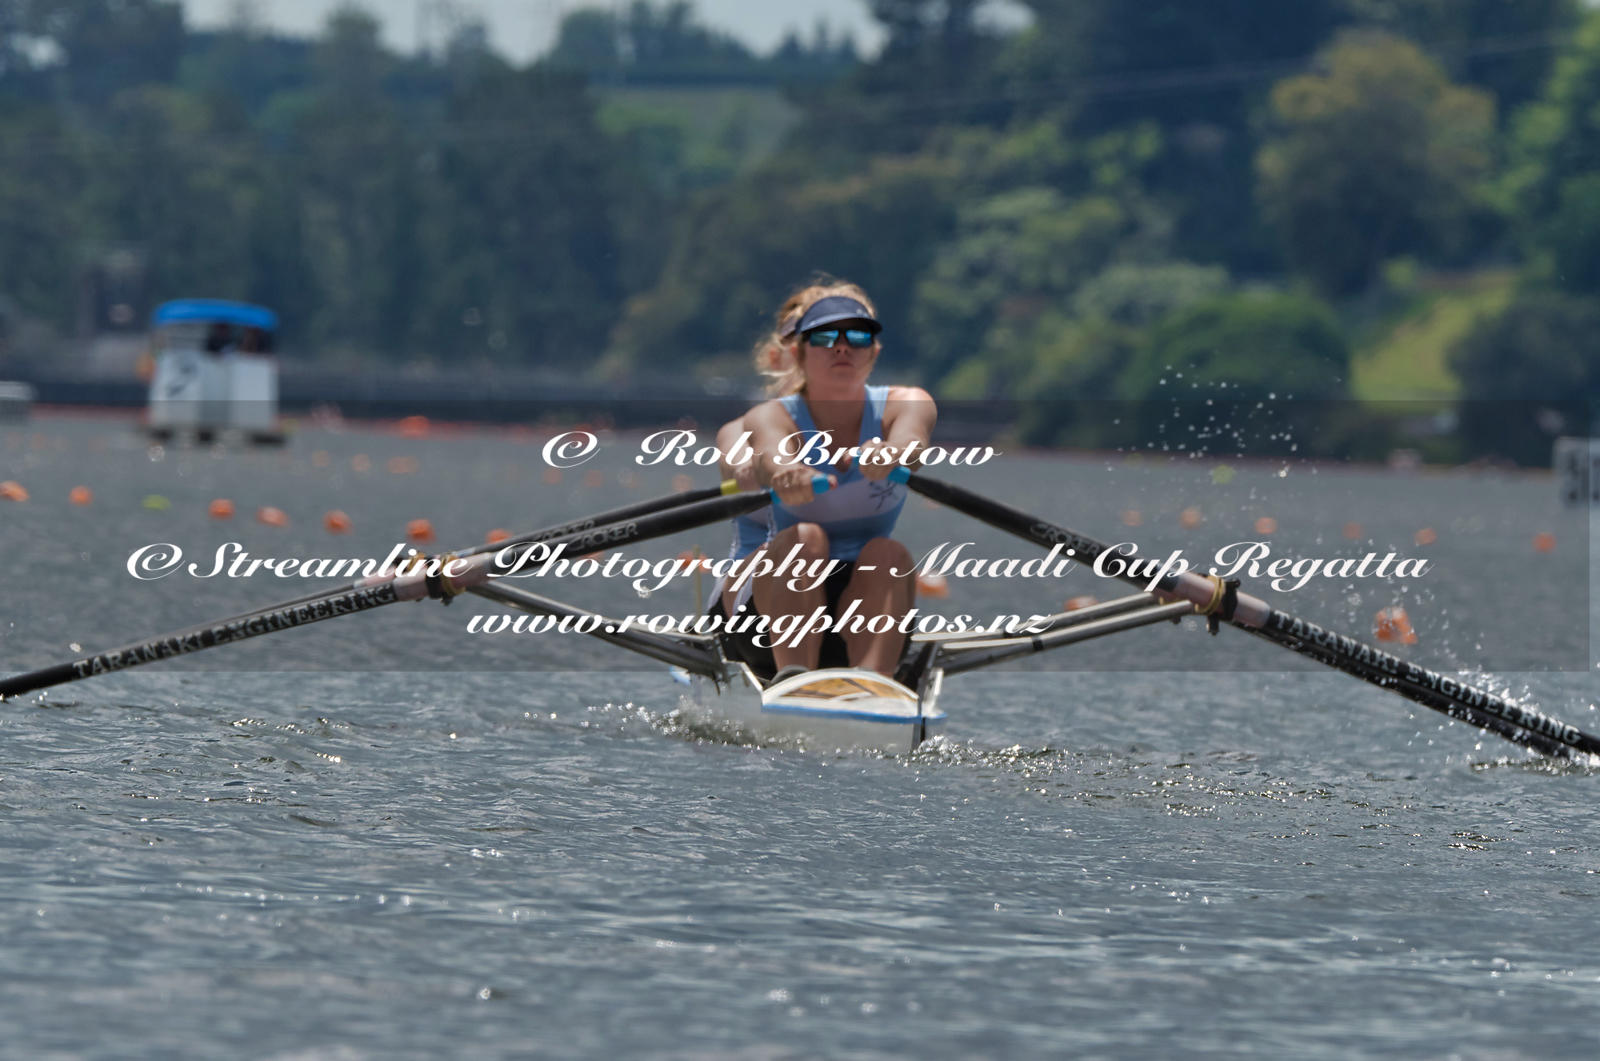 Taken during the Karapiro Xmas Regatta  2018, Lake Karapiro, Cambridge, New Zealand; ©  Rob Bristow; Taken on: Saturday - 15/12/2018-  at 14:22.19